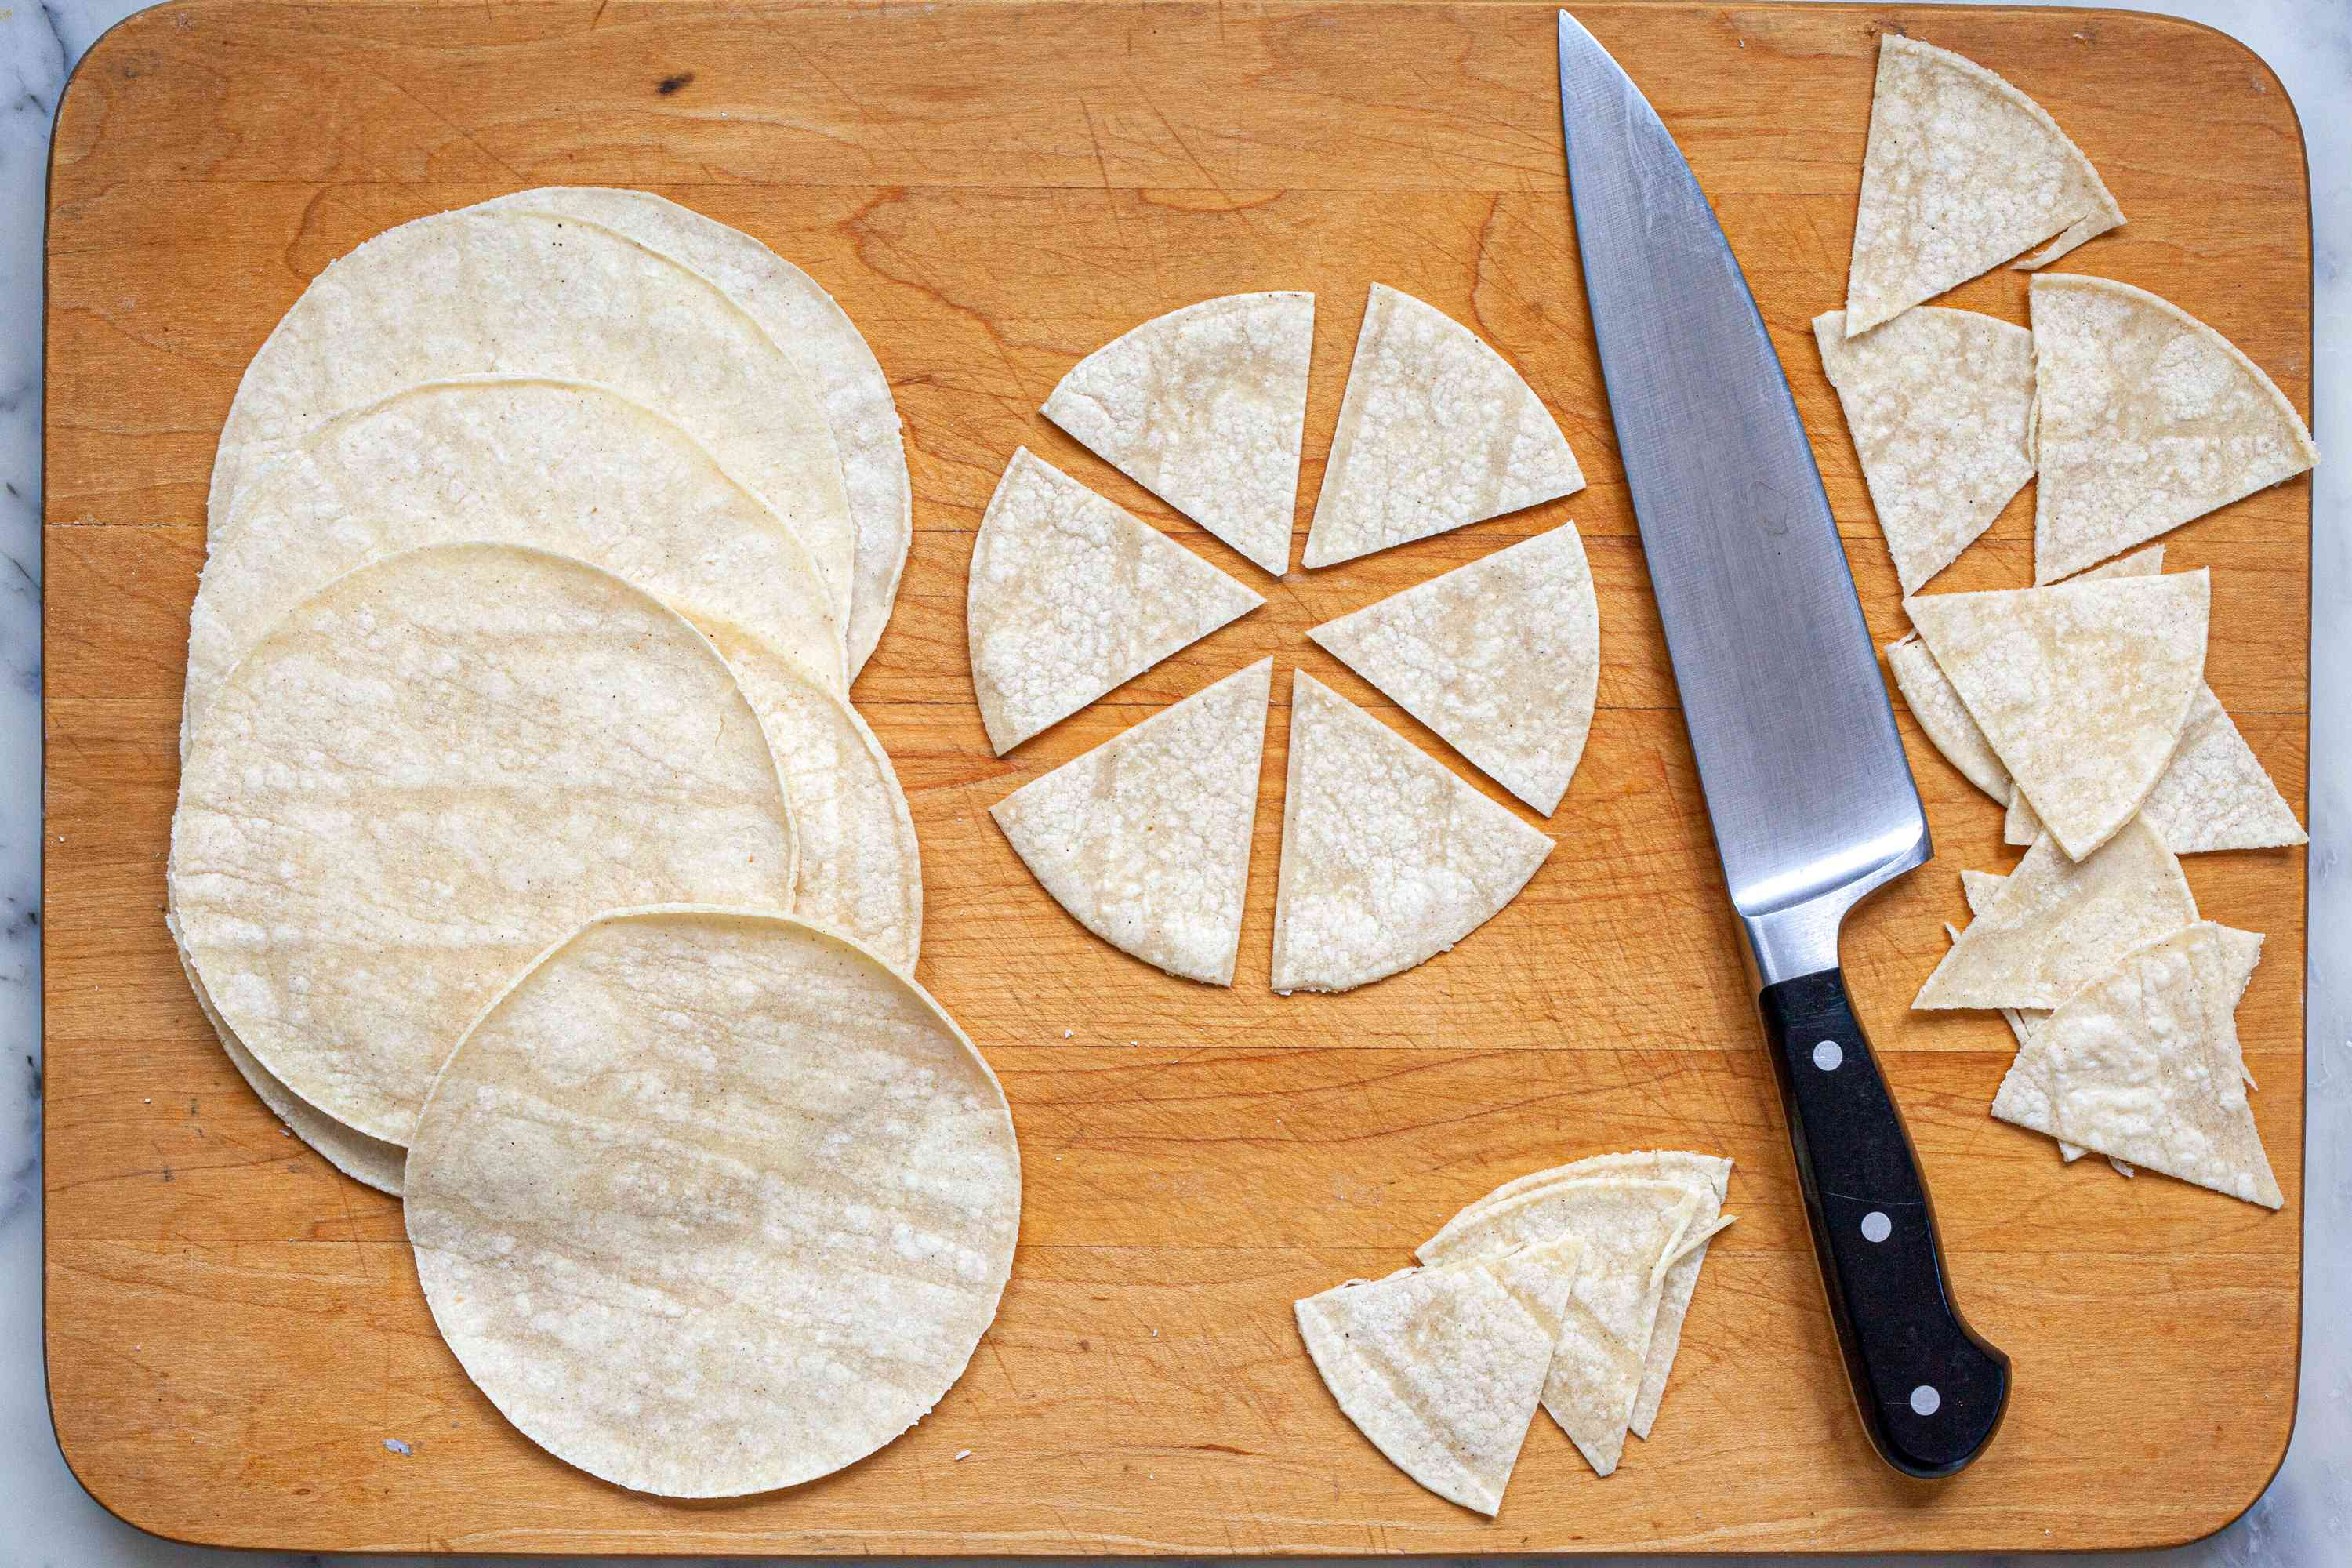 Cutting tortillas into wedges to make homemade tortilla chips.